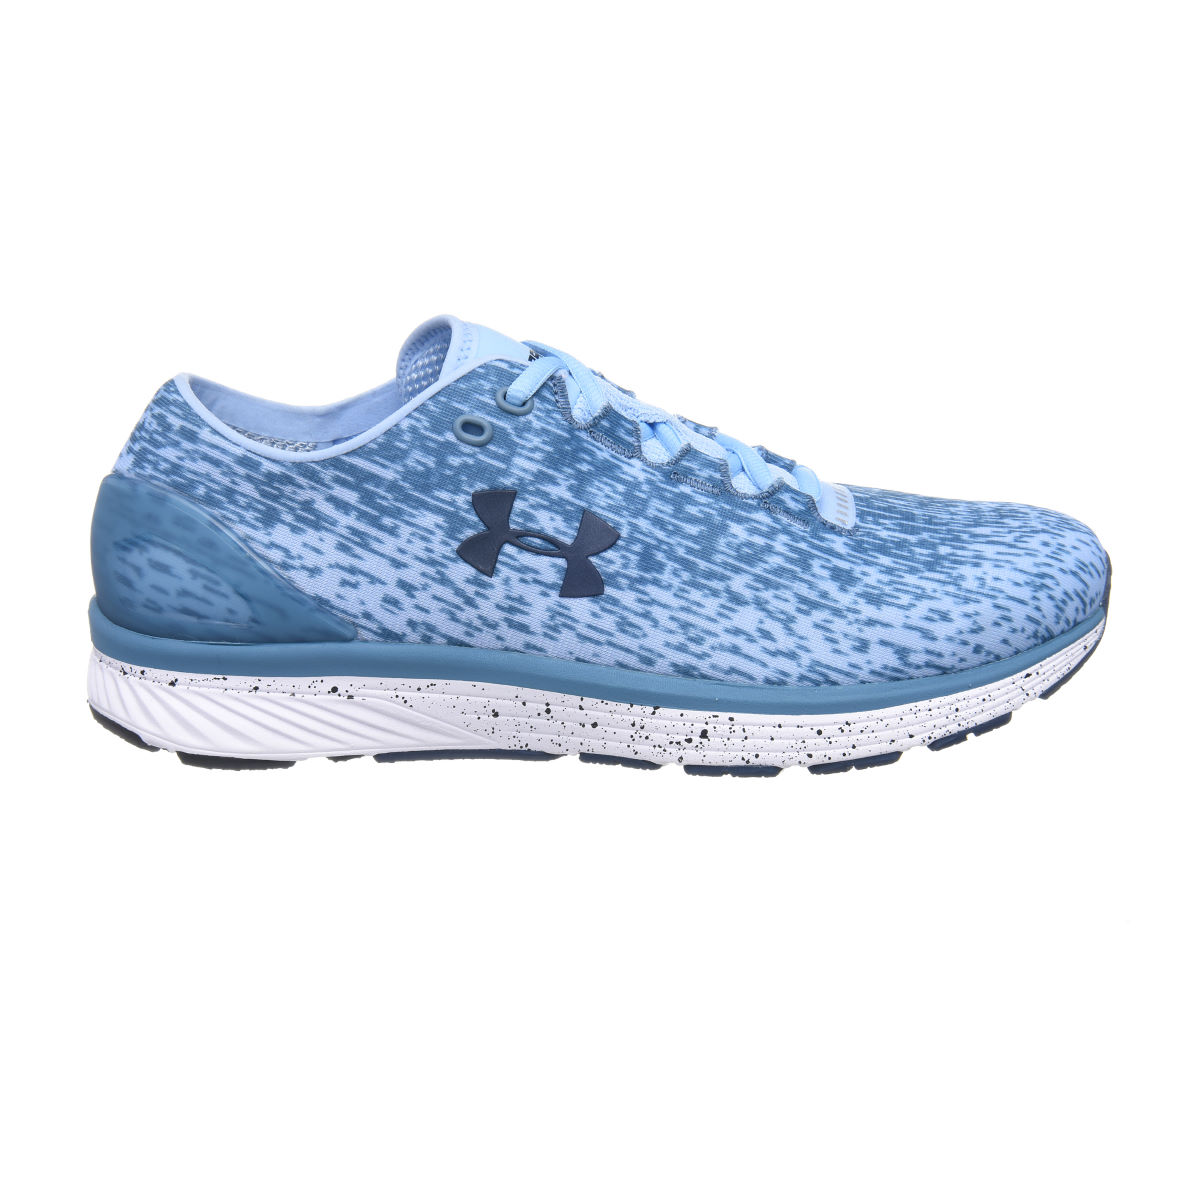 Under Armour Women's Charged Bandit 3 Ombre Running Shoe - 7.5